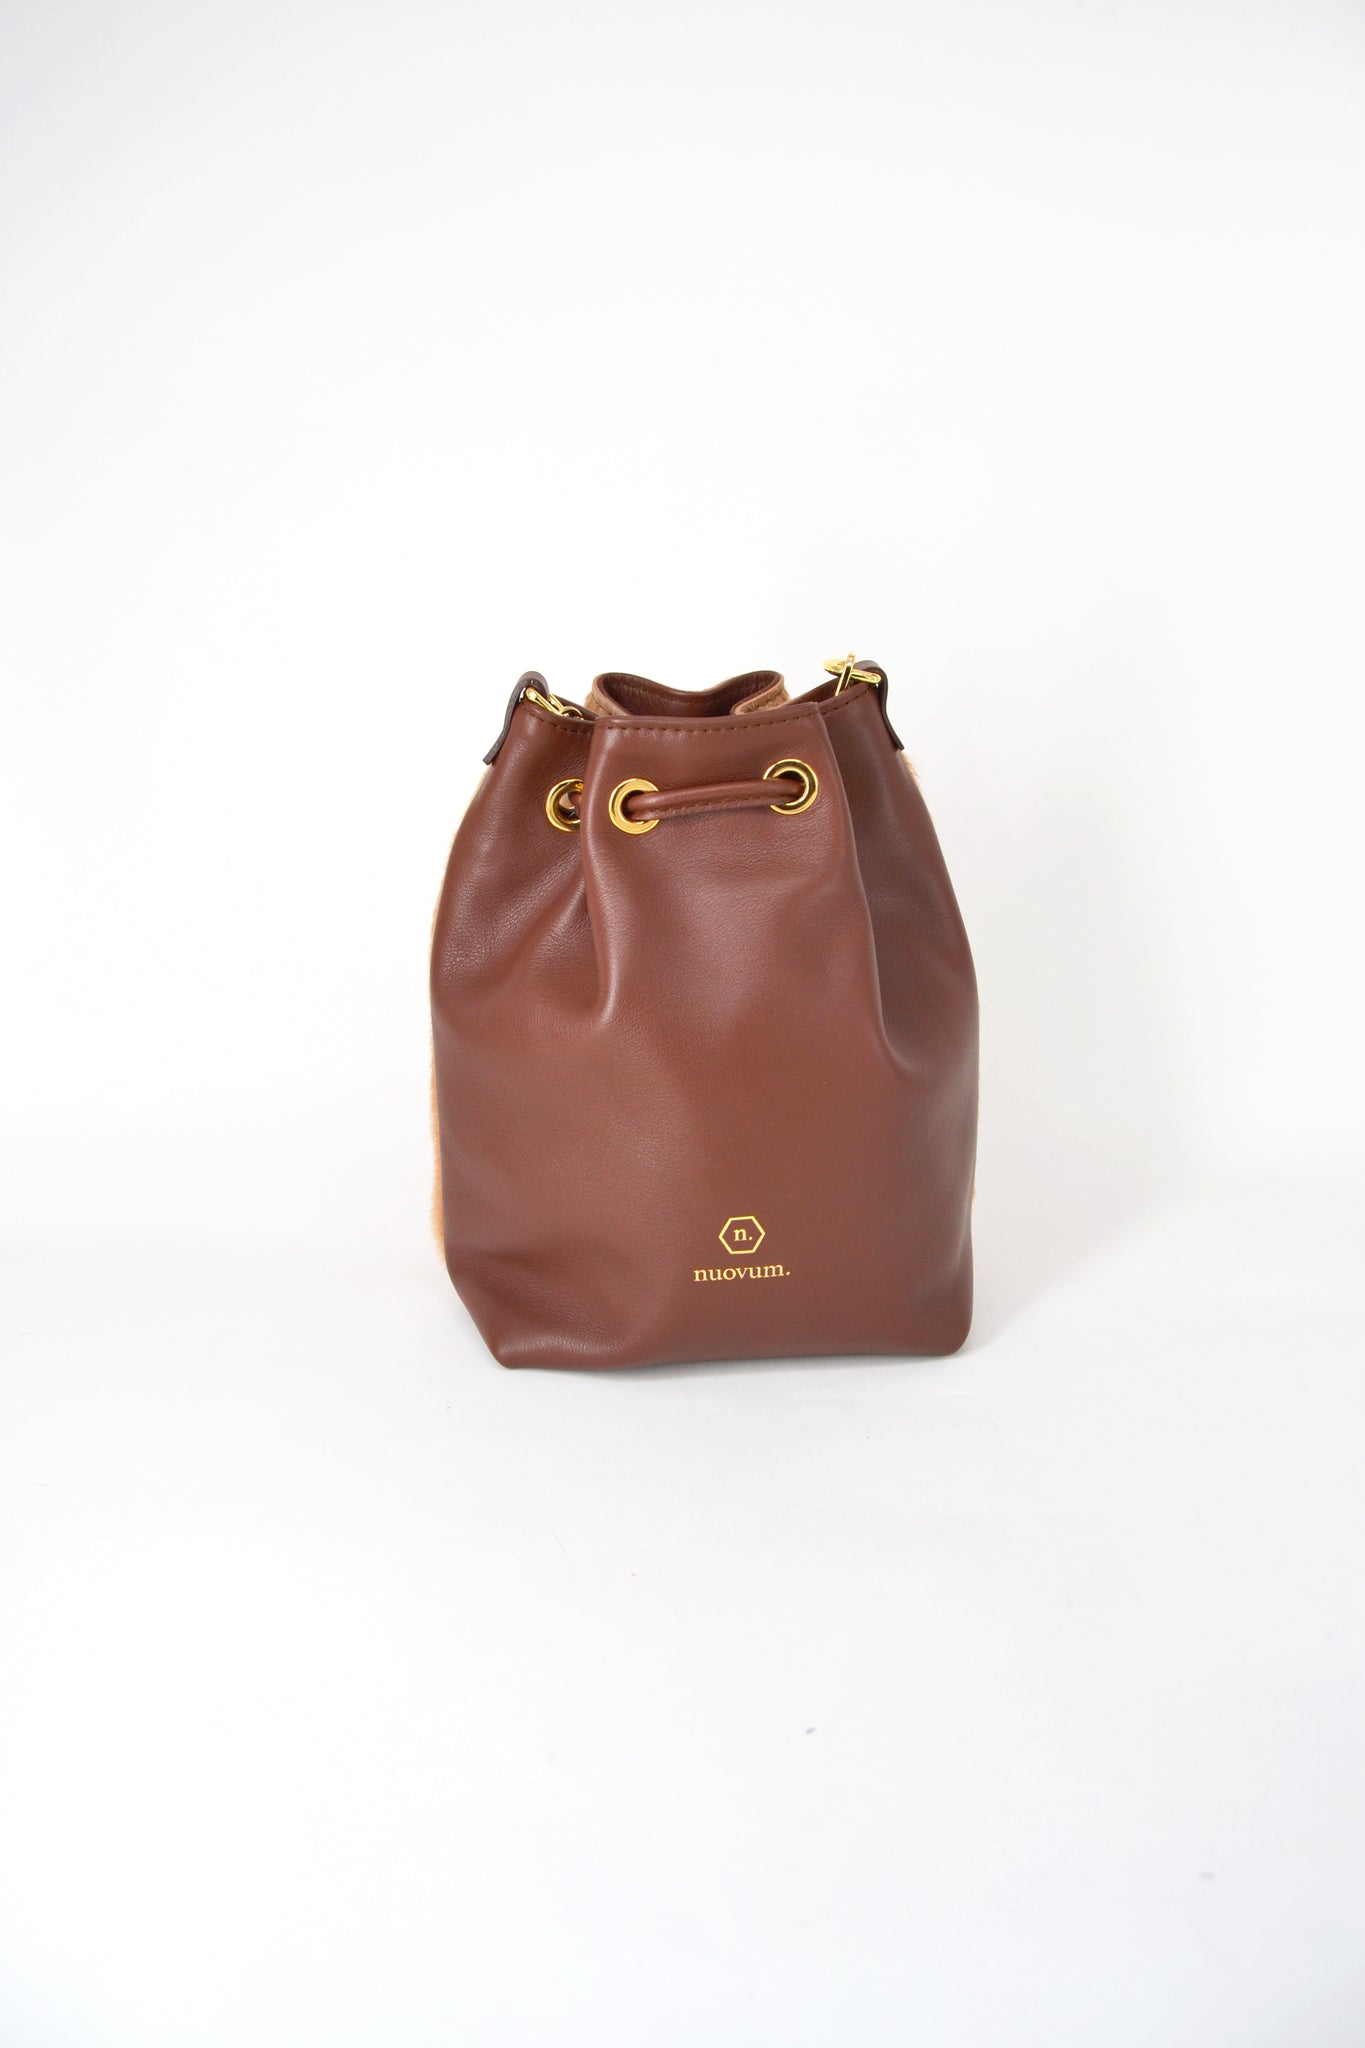 Nuo sac-brown-leather foal-handmade-Nuovum-localdesigners-barcelona